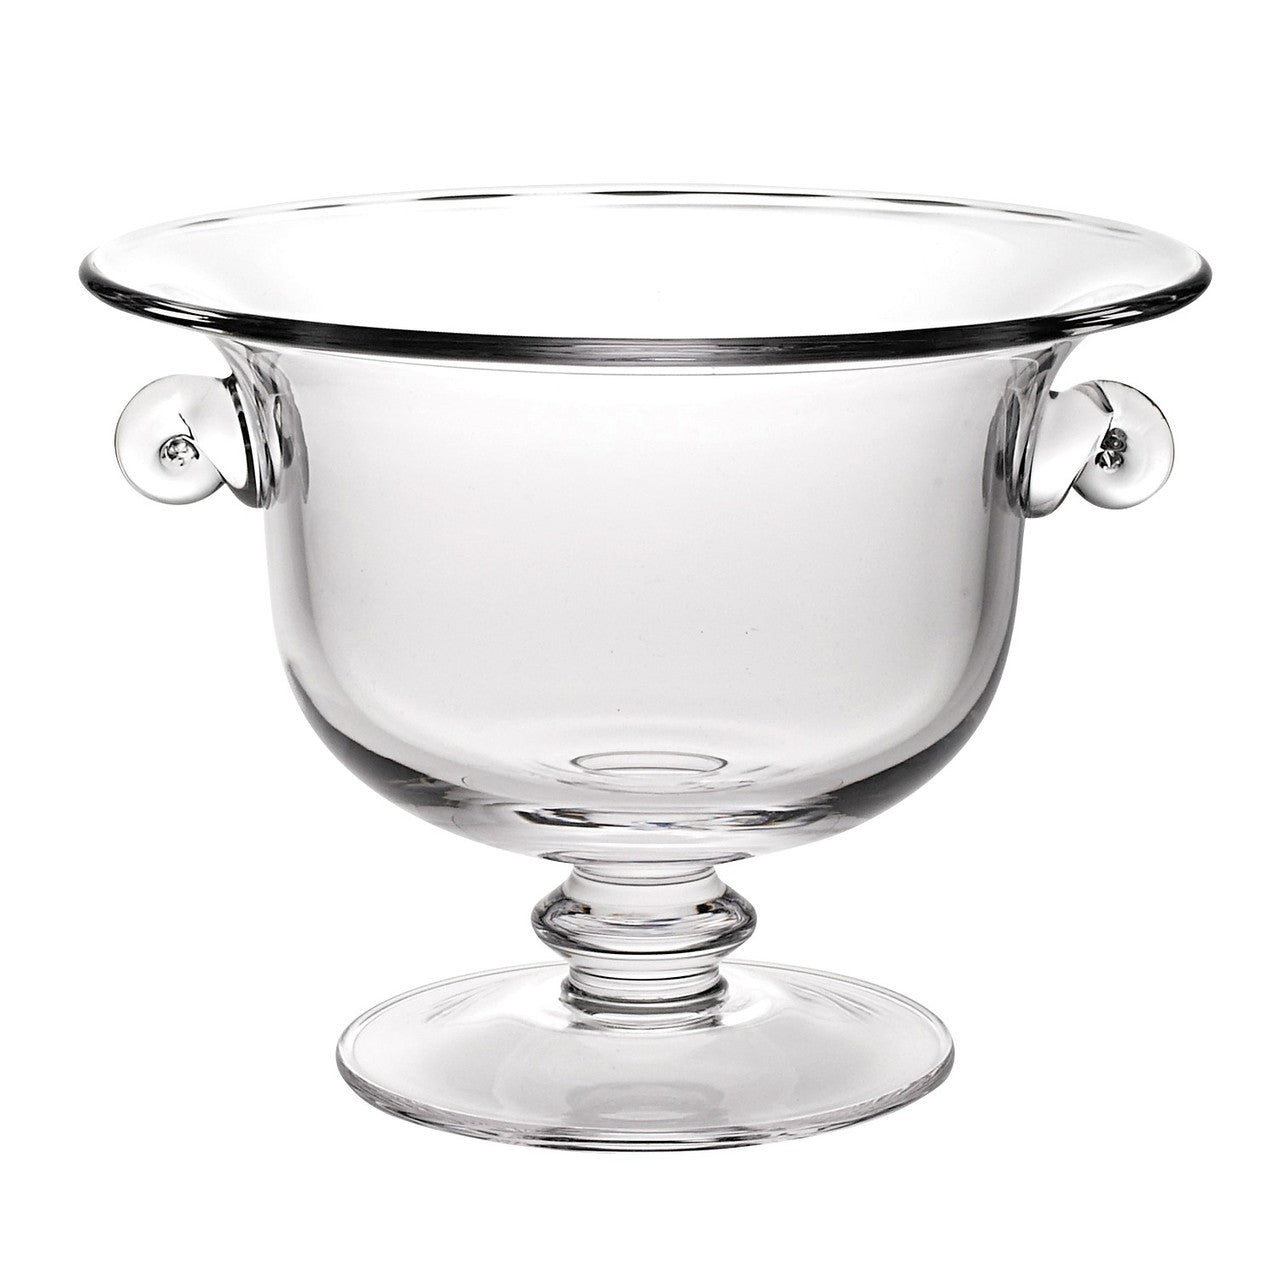 Champion 11 inch Trophy or Fruit Bowl